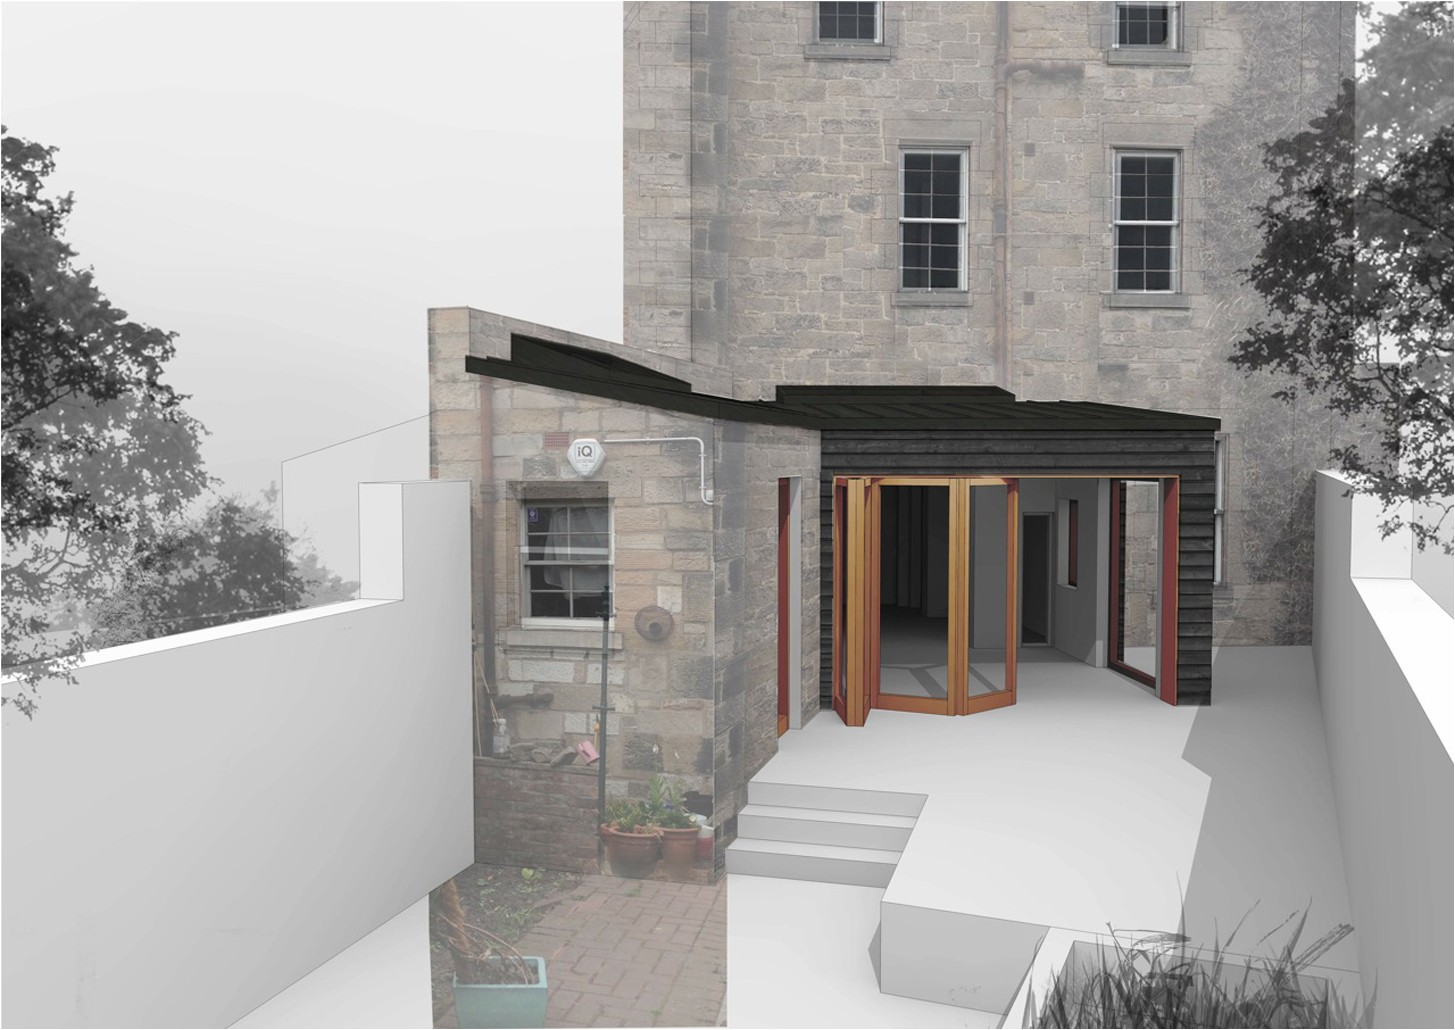 house extensions planning permission scotland